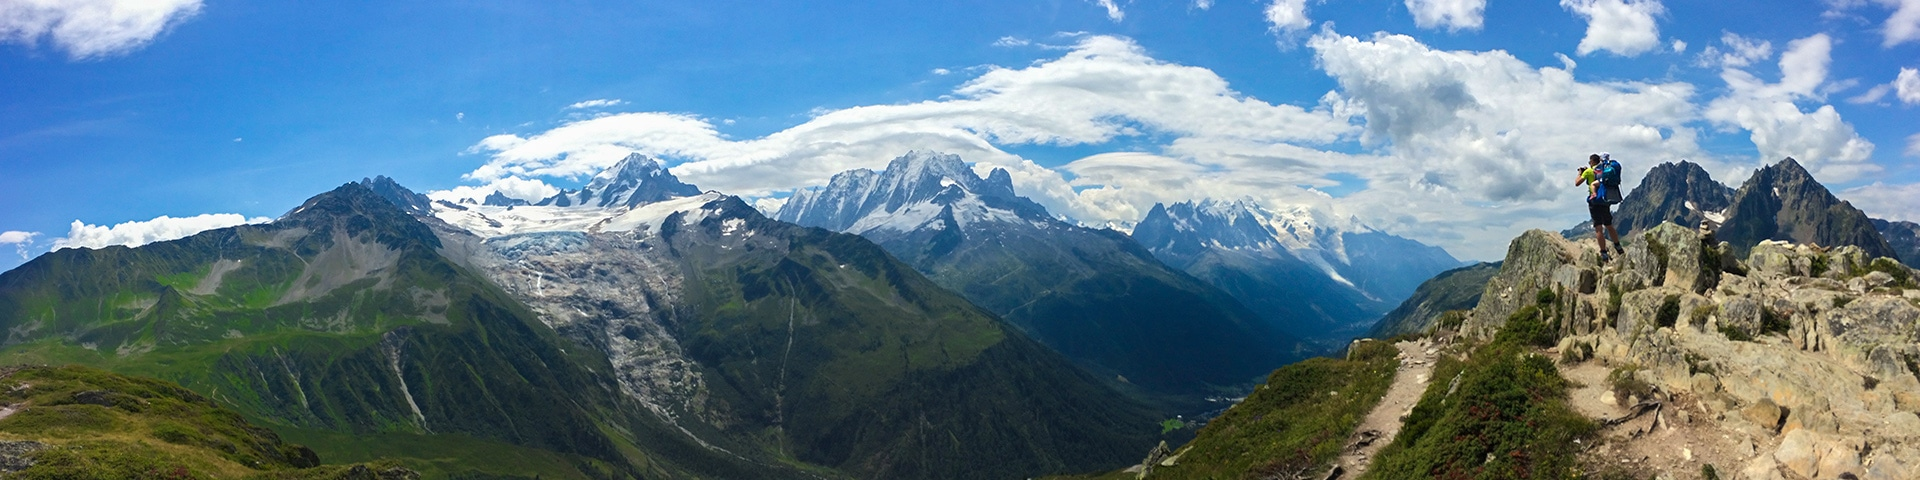 Panorama from the Aiguillettes des Posettes hike in Chamonix, France